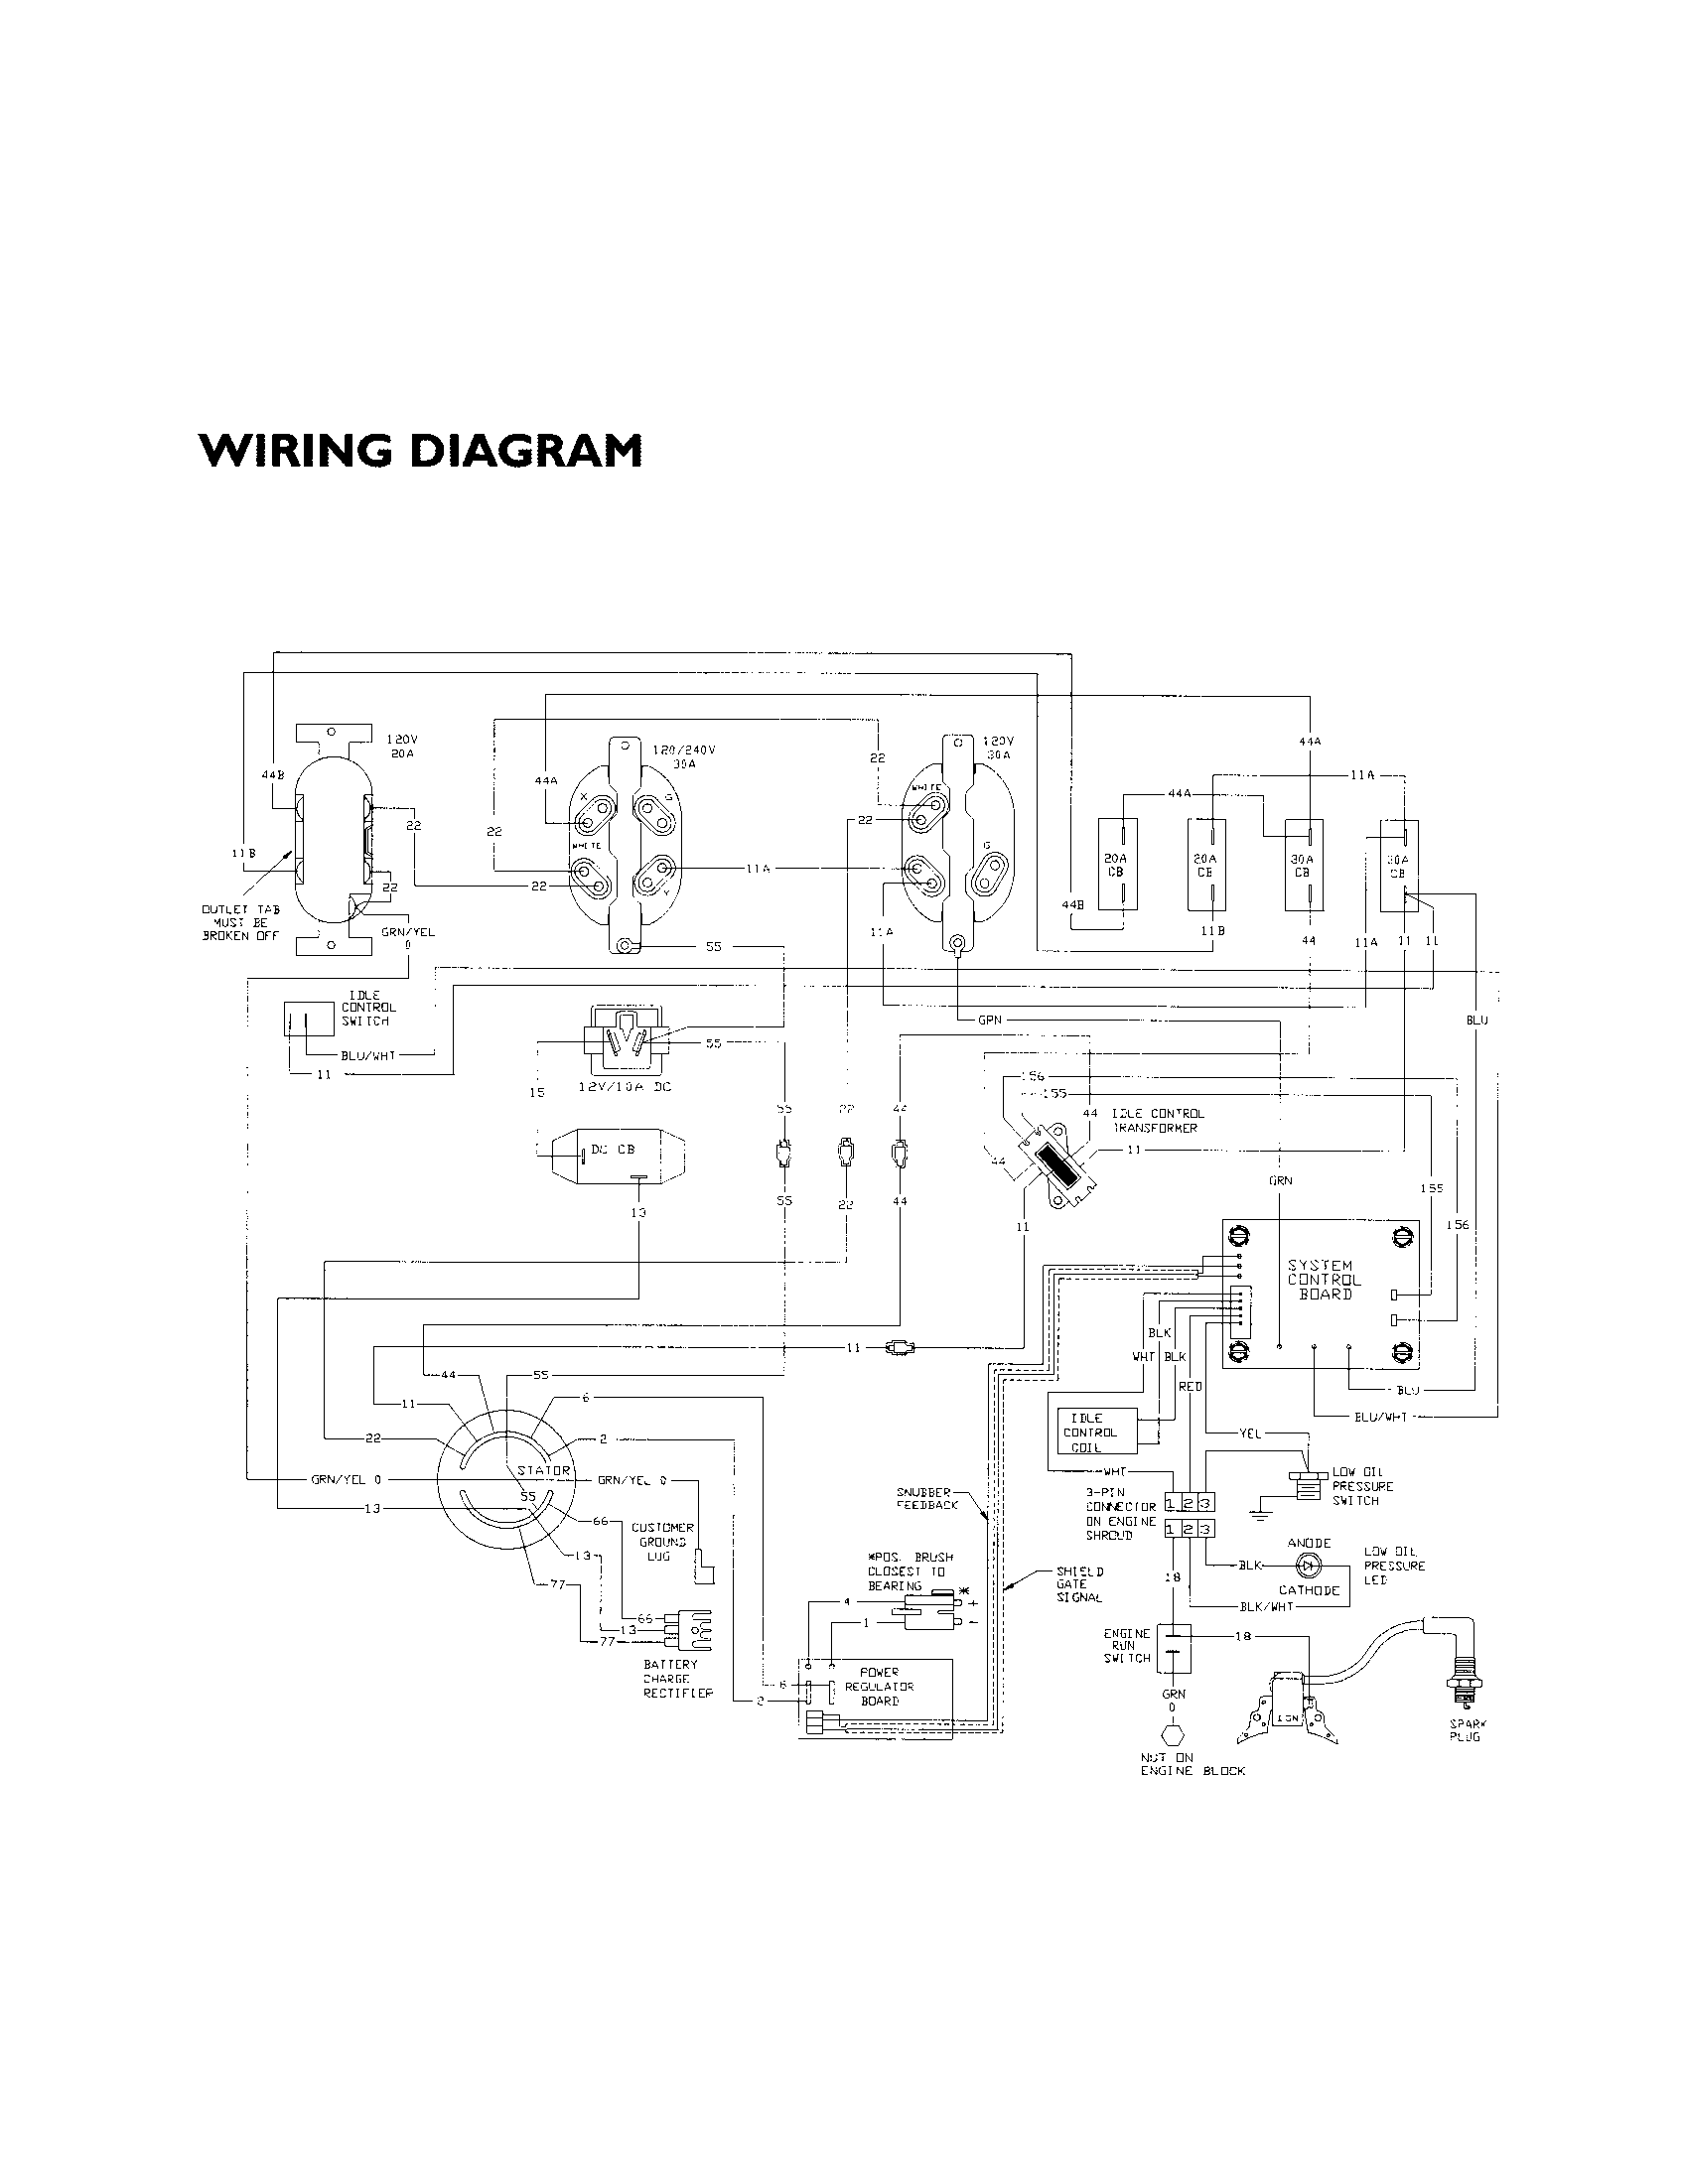 dayton home generator wiring diagram automotive generator